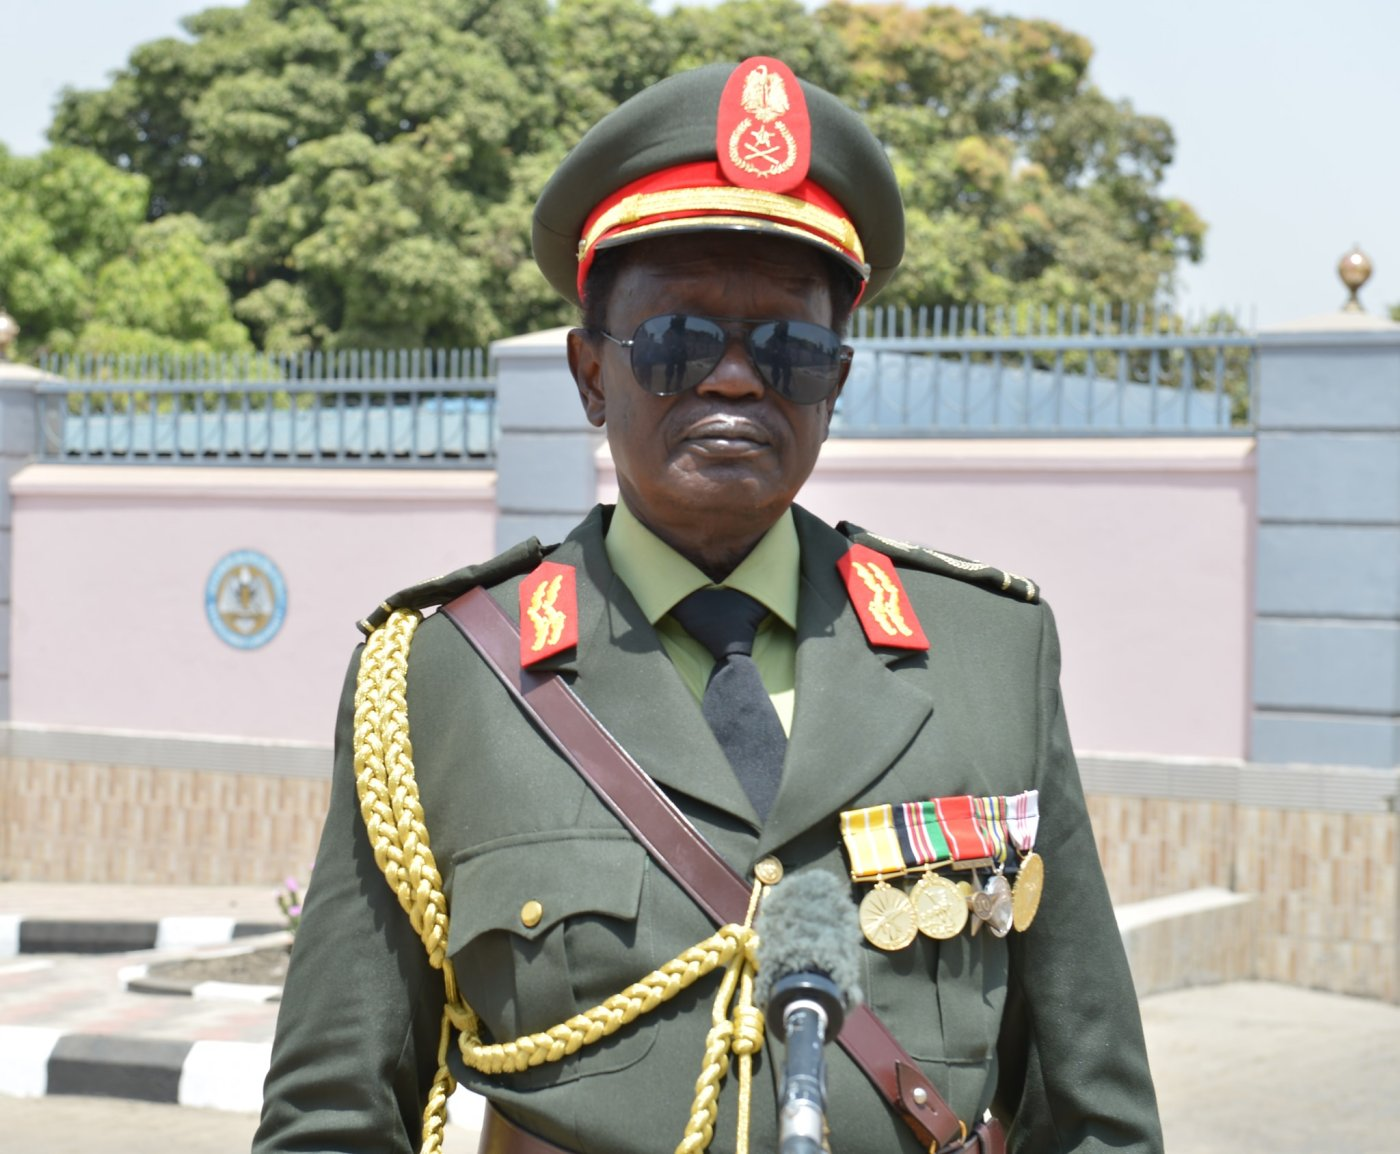 Gen. Aleu Ayieny Aleu, the governor of Warrap State posting for a picture after visiting Salva Kiir at his residence(Photo credit: file)